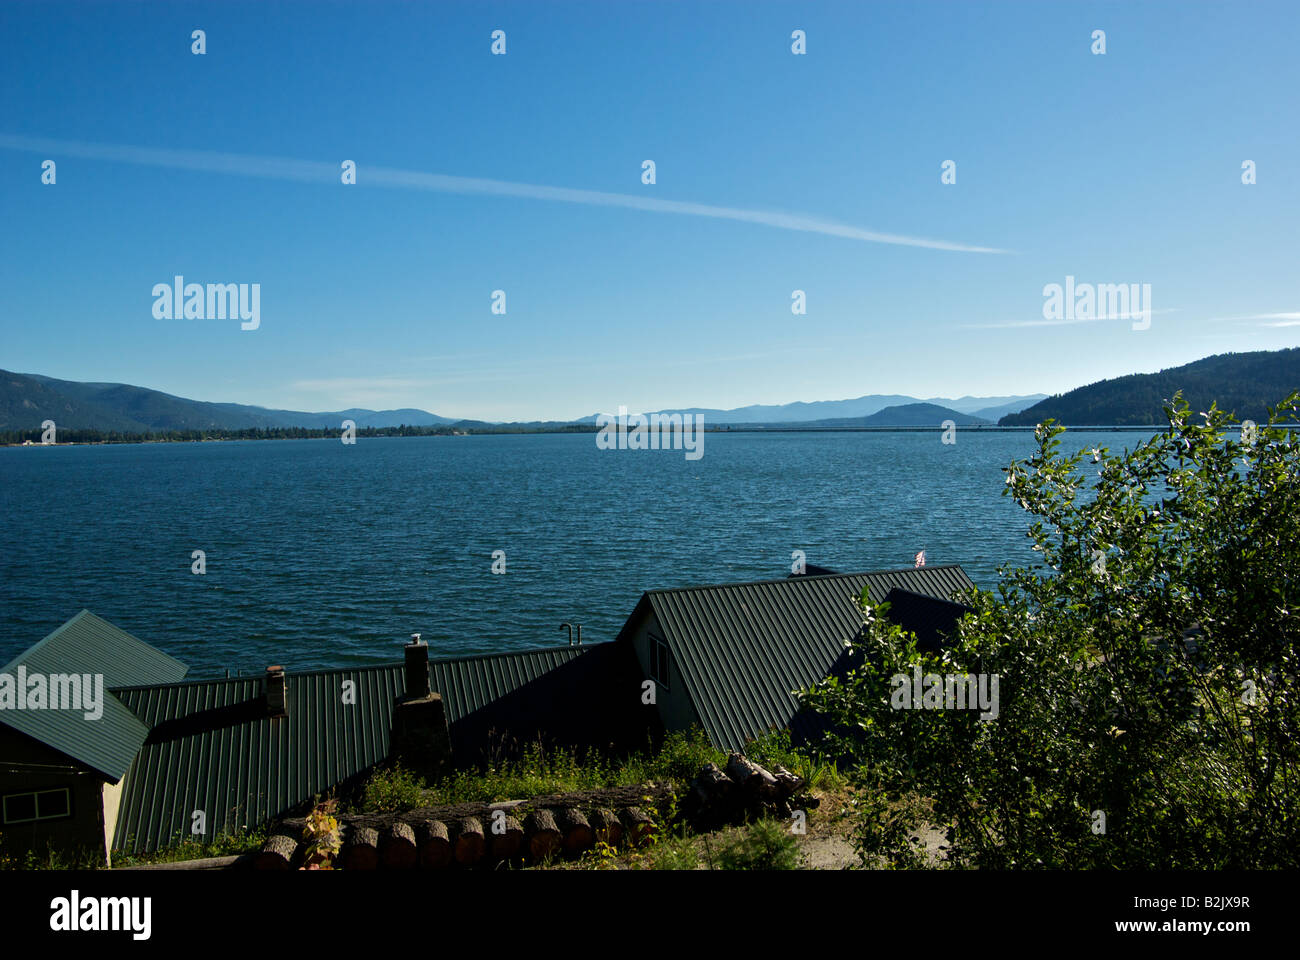 View of Lake Pend Oreille and Long Bridge at Sandpoint - Stock Image